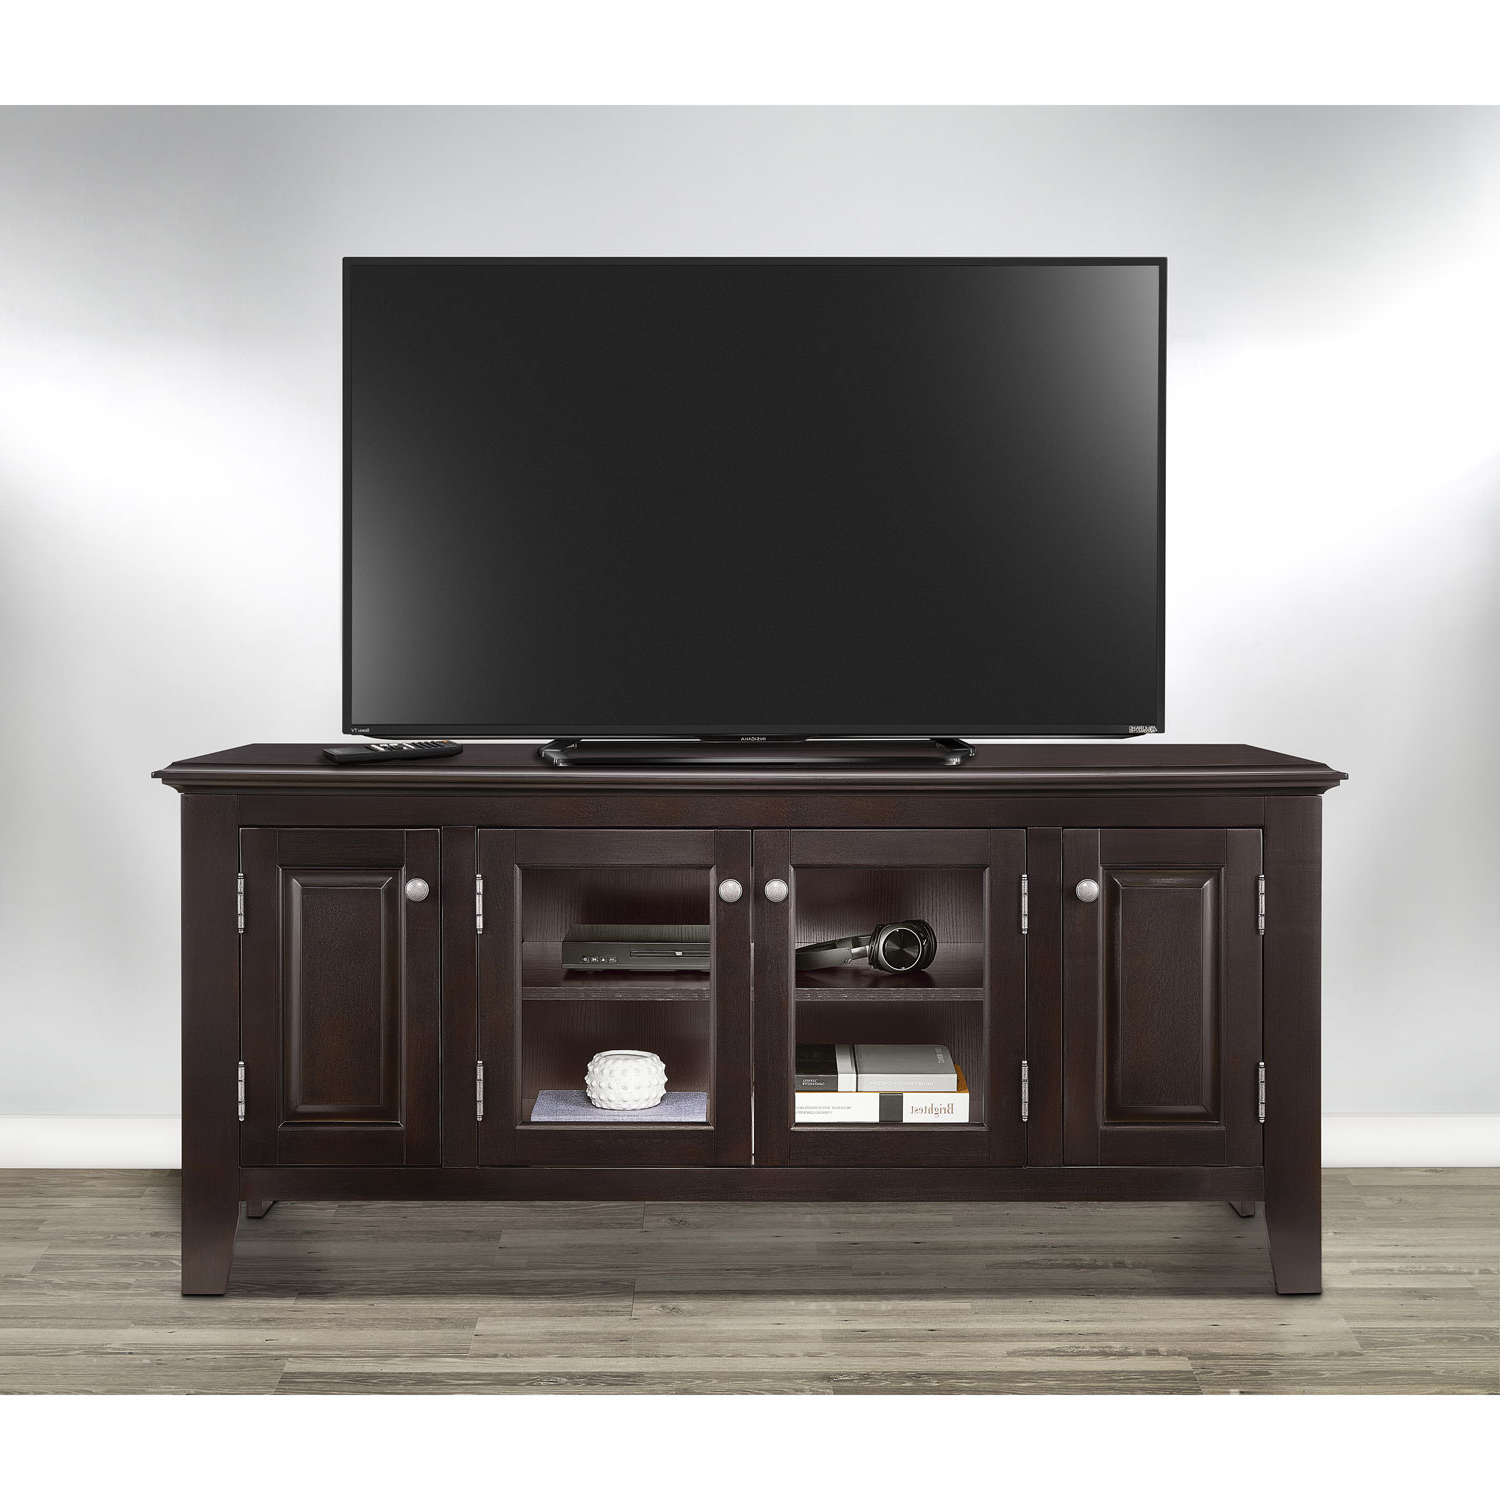 "Insignia 60"" Tv Stand – Dark Espresso : Tv Stands – Best Buy Canada With Valencia 60 Inch Tv Stands (View 13 of 20)"